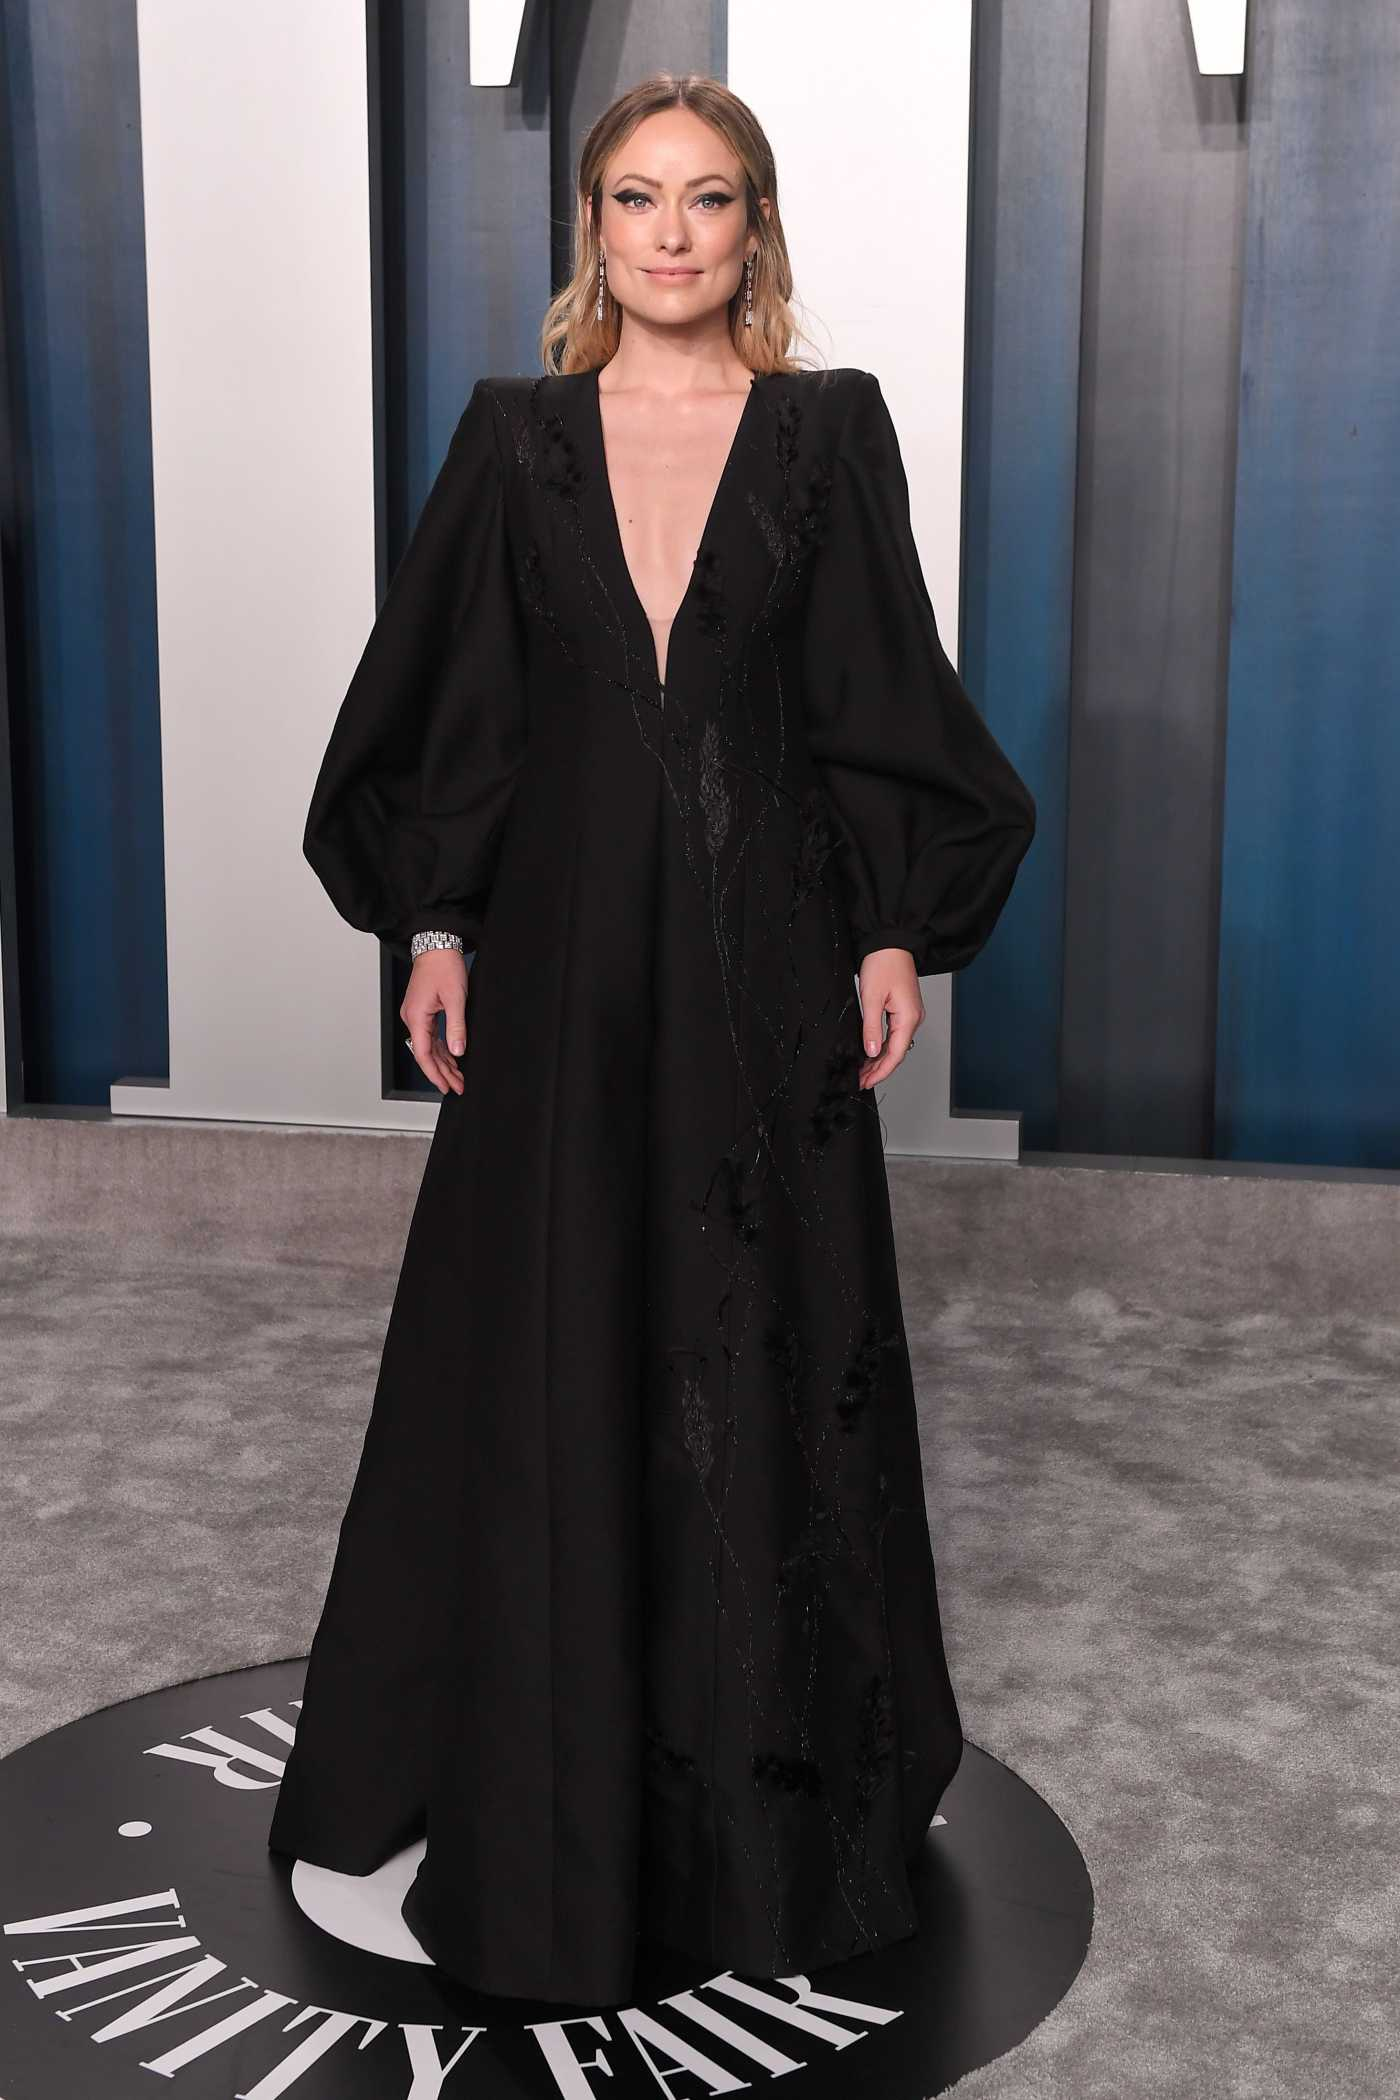 Olivia Wilde Attends the 92nd Academy Awards Vanity Fair Oscar Party in Beverly Hills 02/09/2020